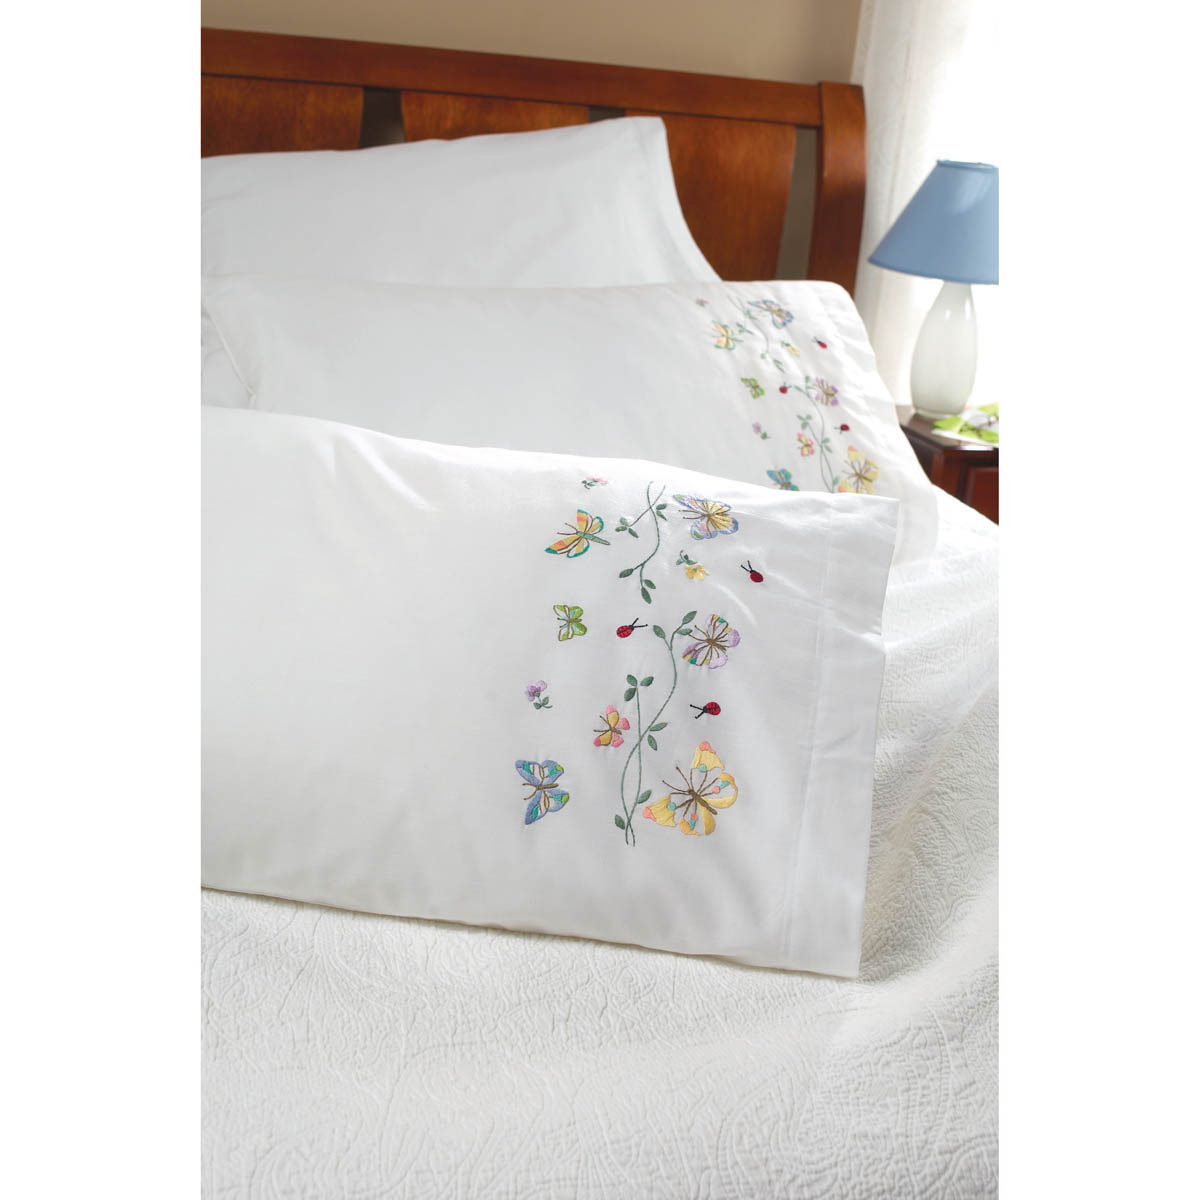 Bucilla ® Stamped Cross Stitch & Embroidery - Pillowcase Pairs - Butterflies in Flight - 45076